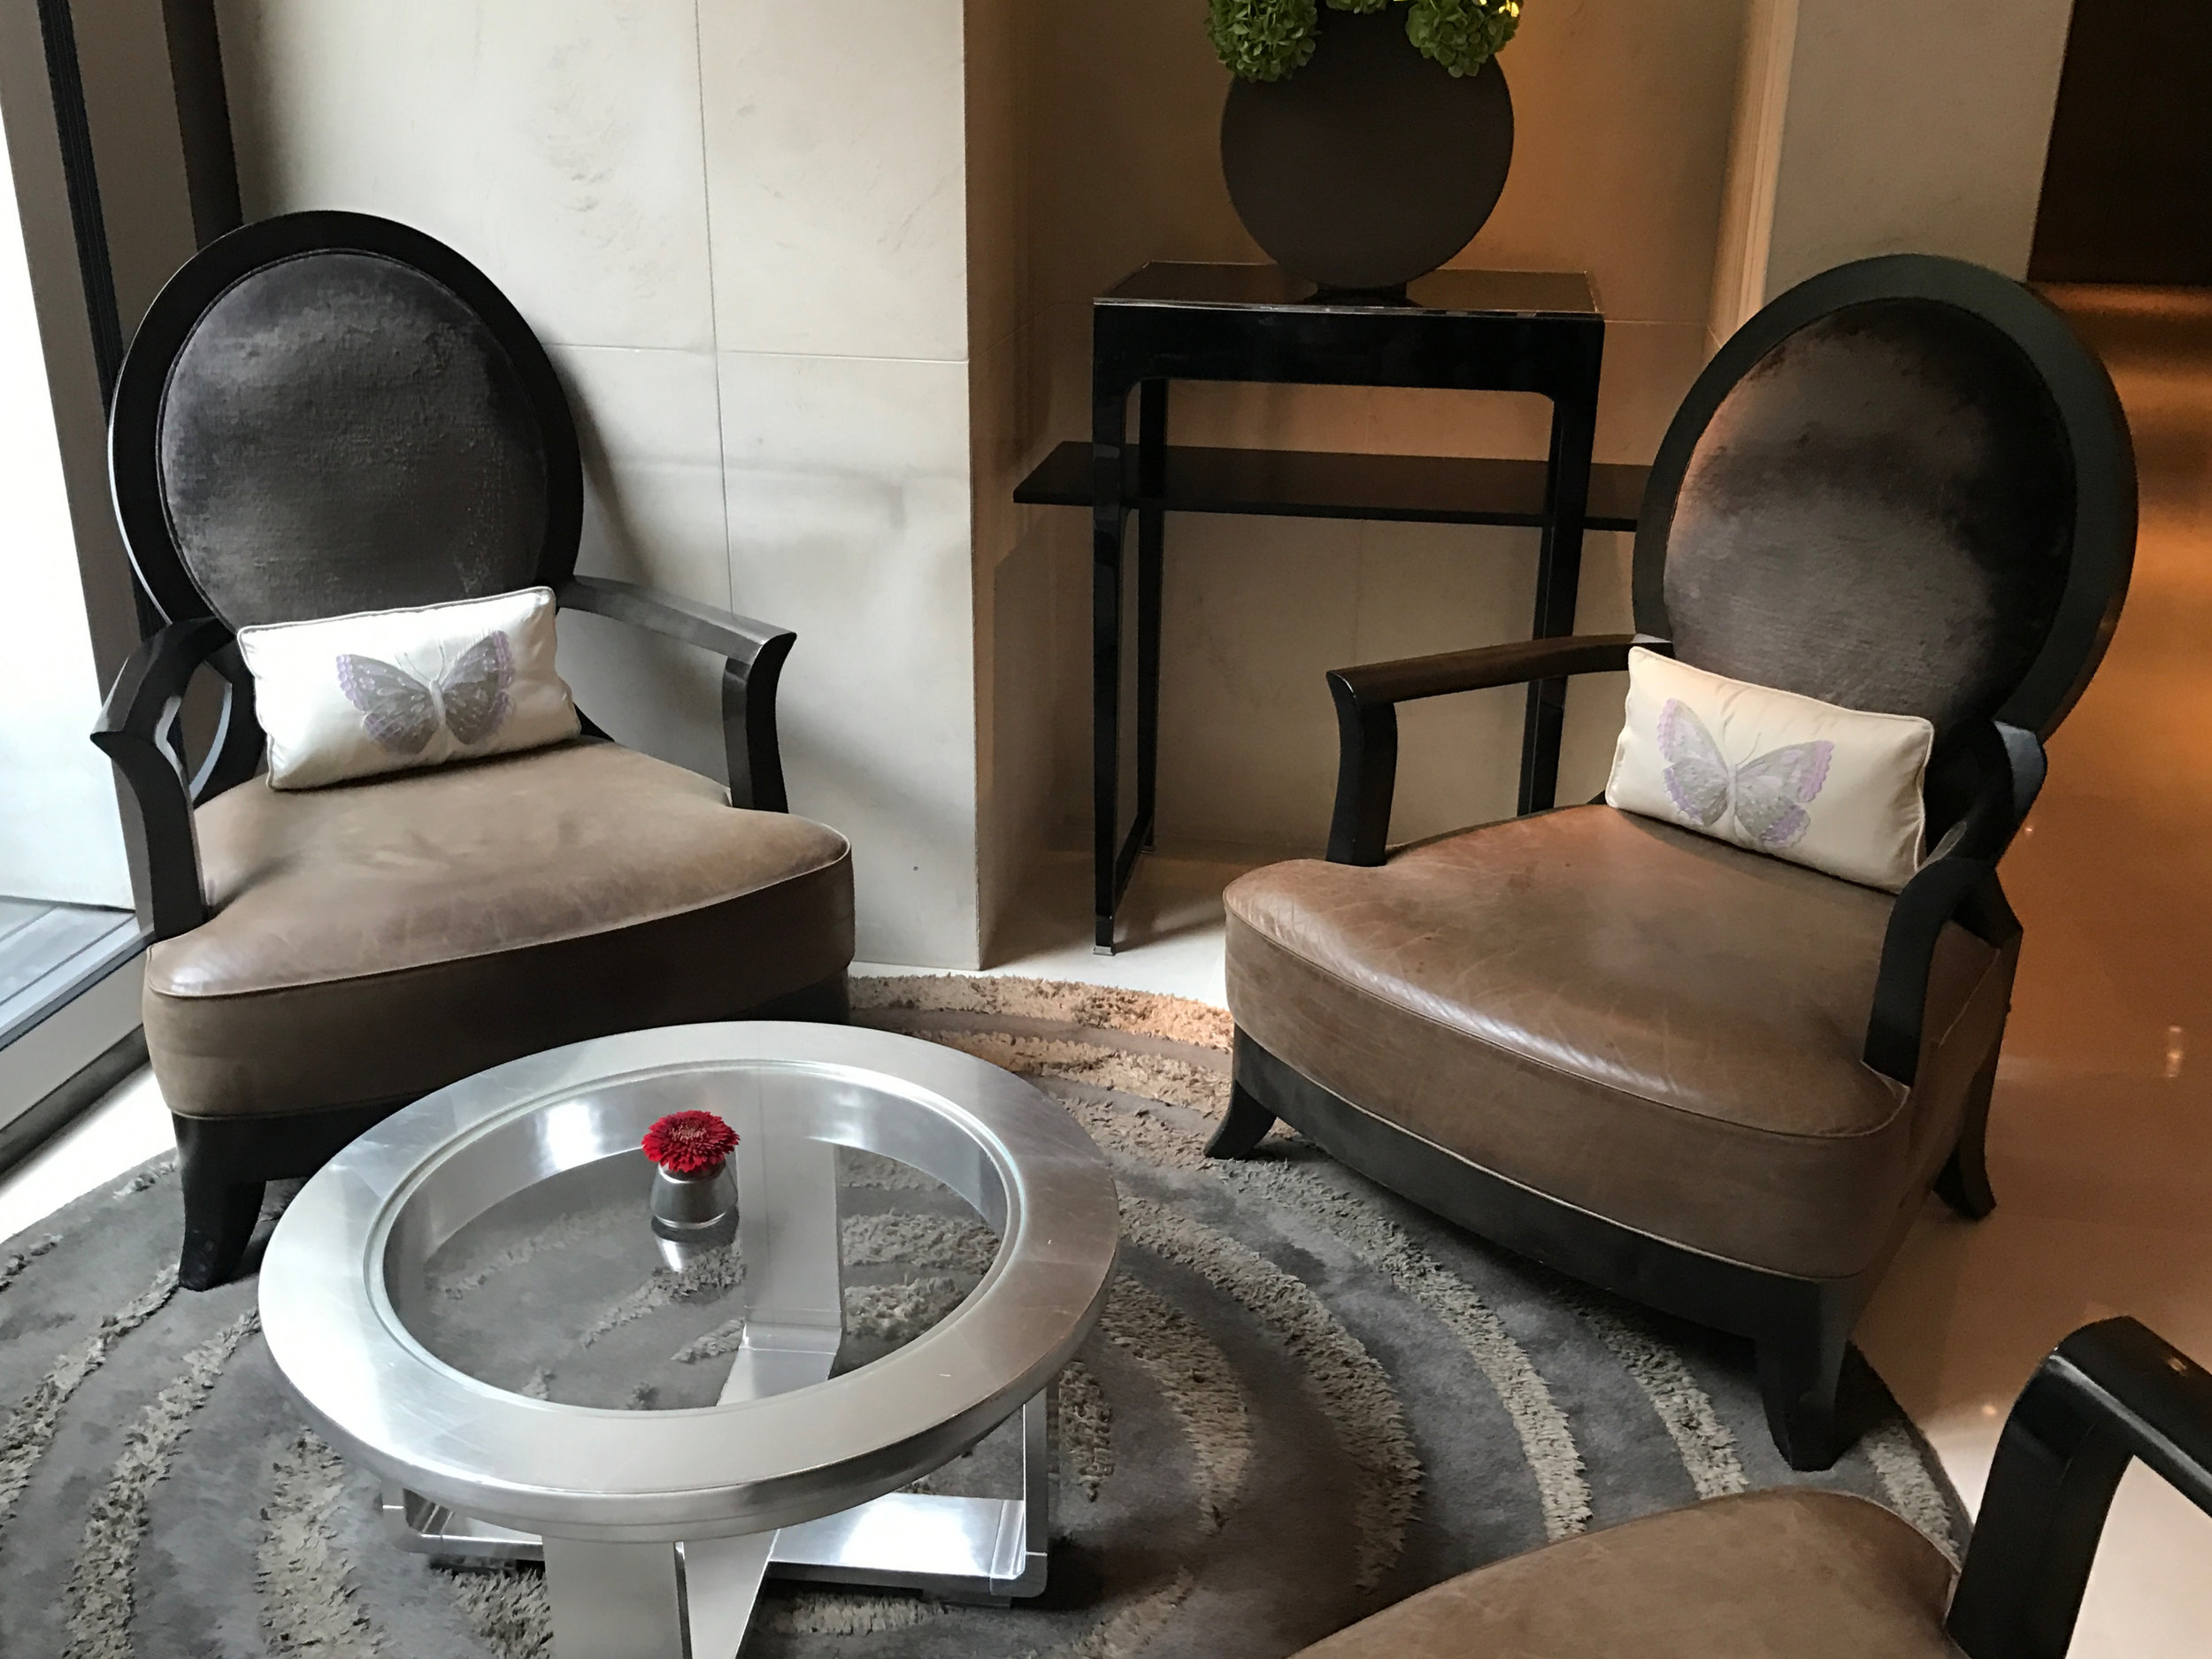 Relax in luxurious surroundings